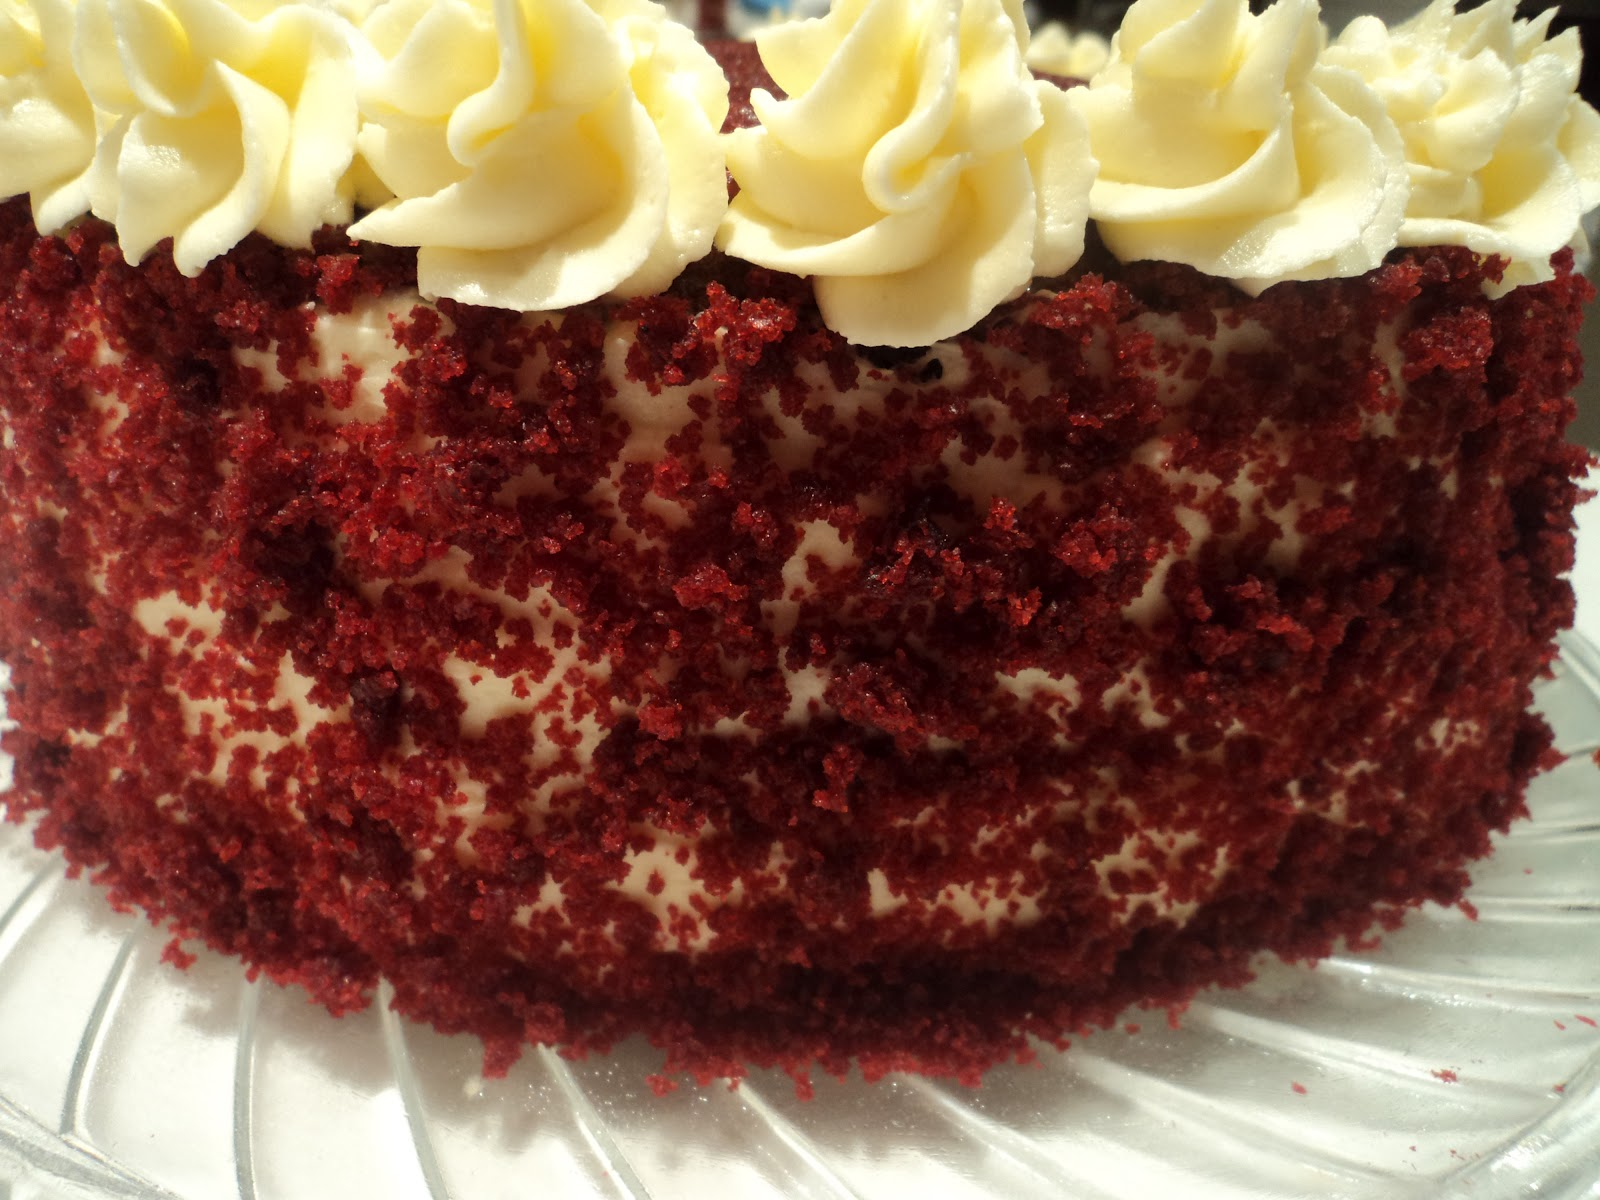 d5ee0f83e9d6 Nowadays you can find red velvet cake all over the place and consequently  partakers are not overcome with the same wonder and awe as when they first  gazed ...